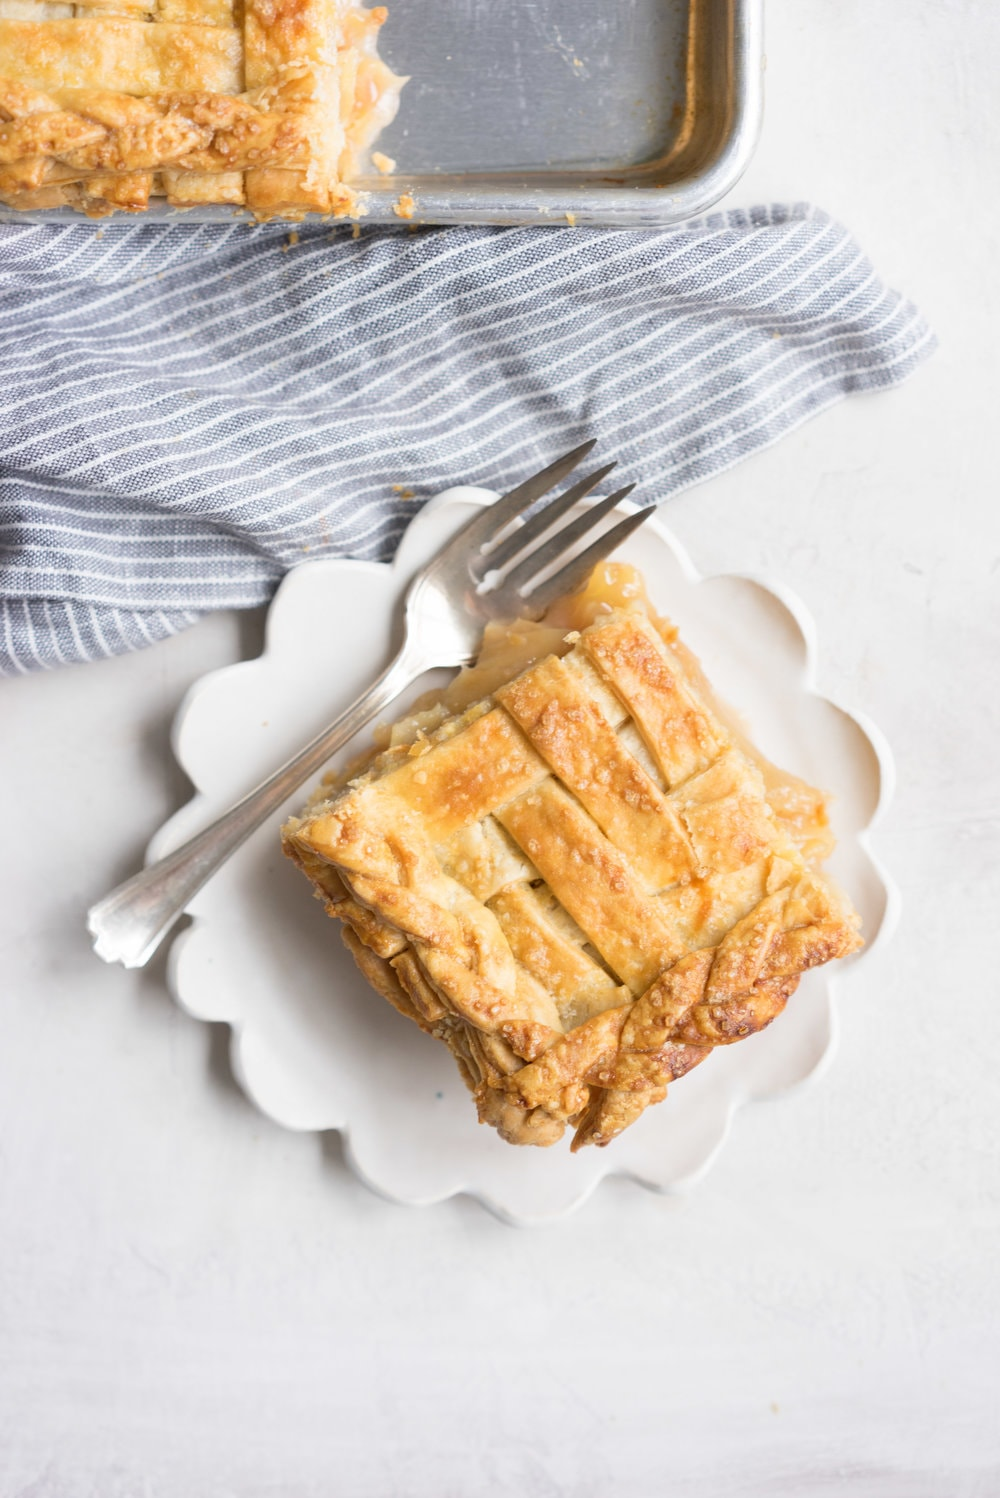 Apple Slab pie - perfect for a crowd, this apple slab pie combines juicy apples and tender flaky pie crust into the perfect make-ahead dessert, perfect for any season